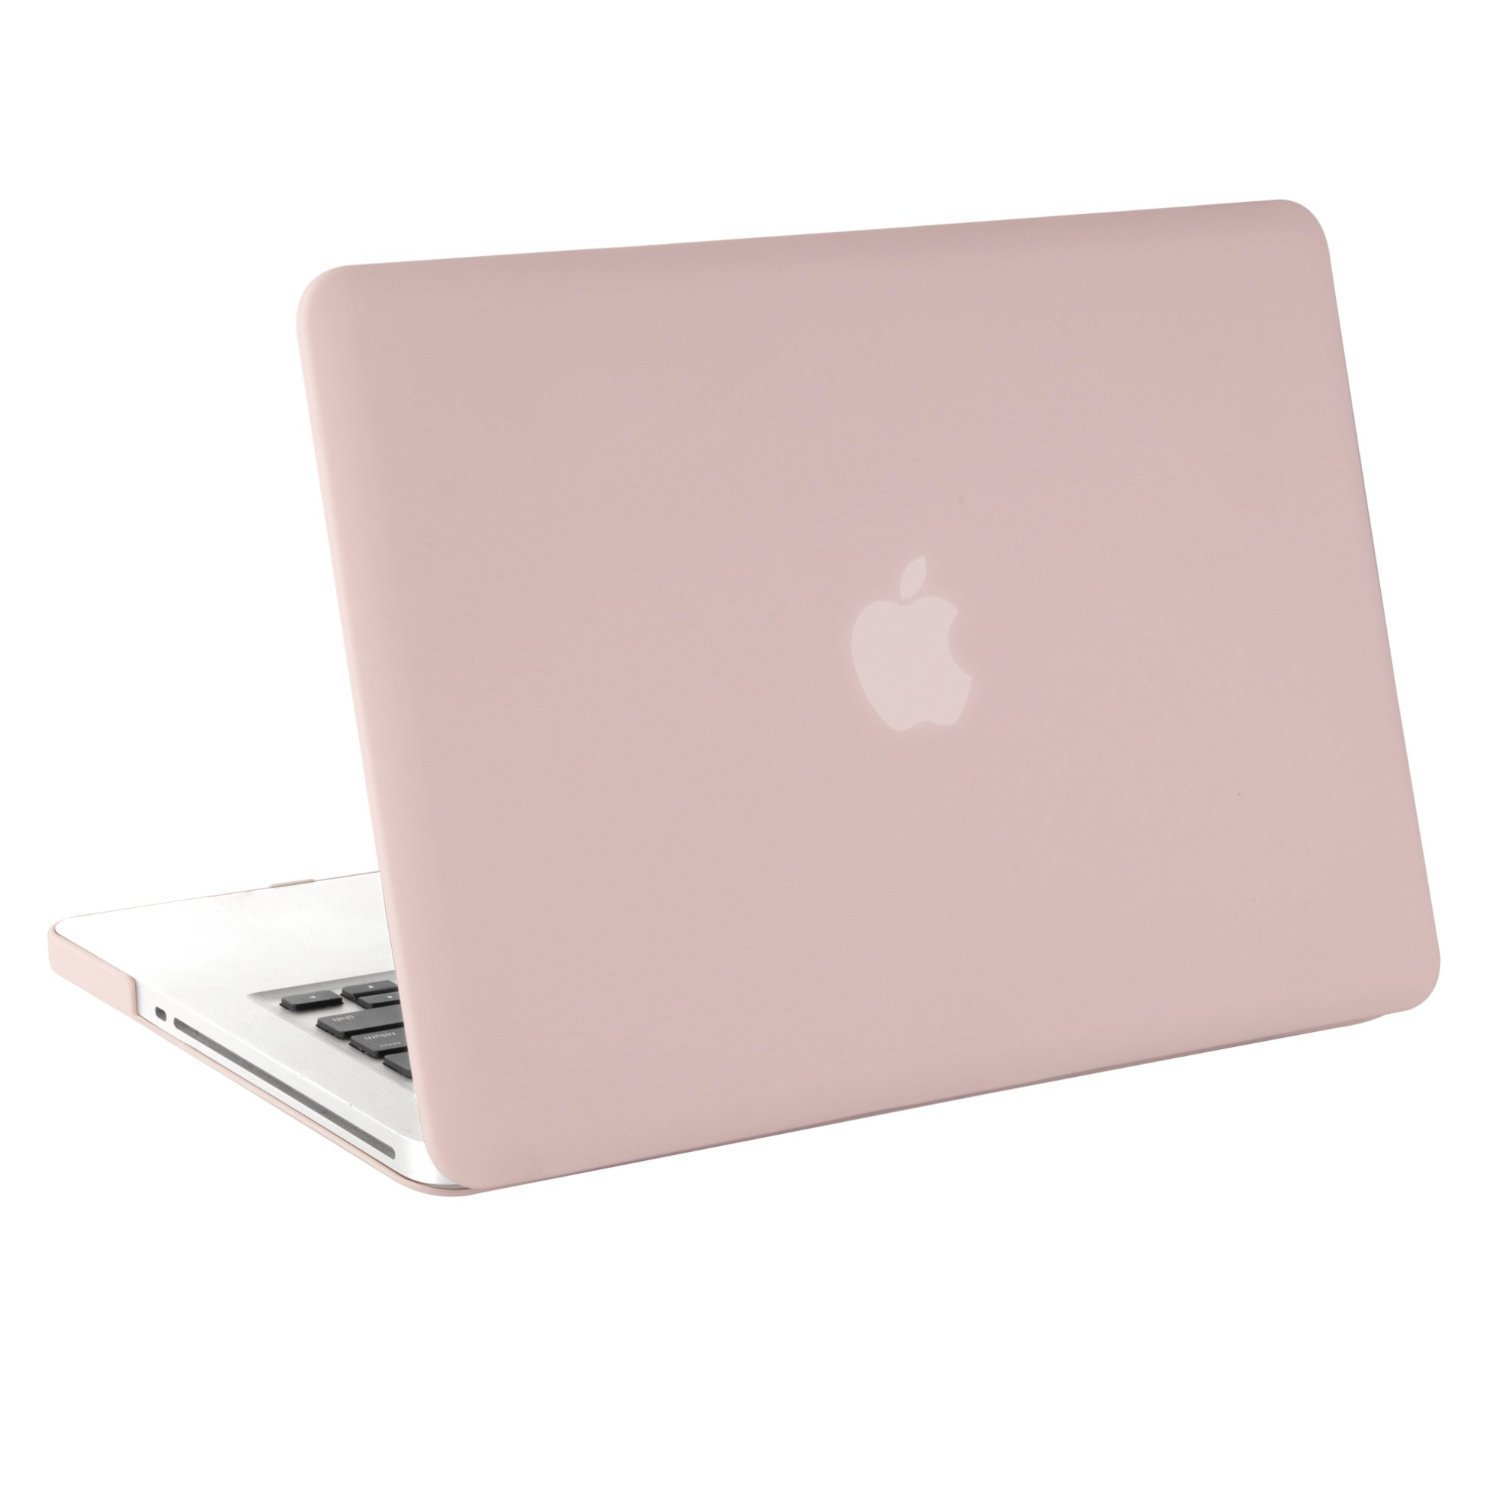 MOSISO Plastic Hard Shell Case Cover Only Compatible Old MacBook Pro 13 inch (A1278 CD-ROM), Release Early 2012/2011/2010/2009/2008, Rose Quartz by MOSISO (Image #4)